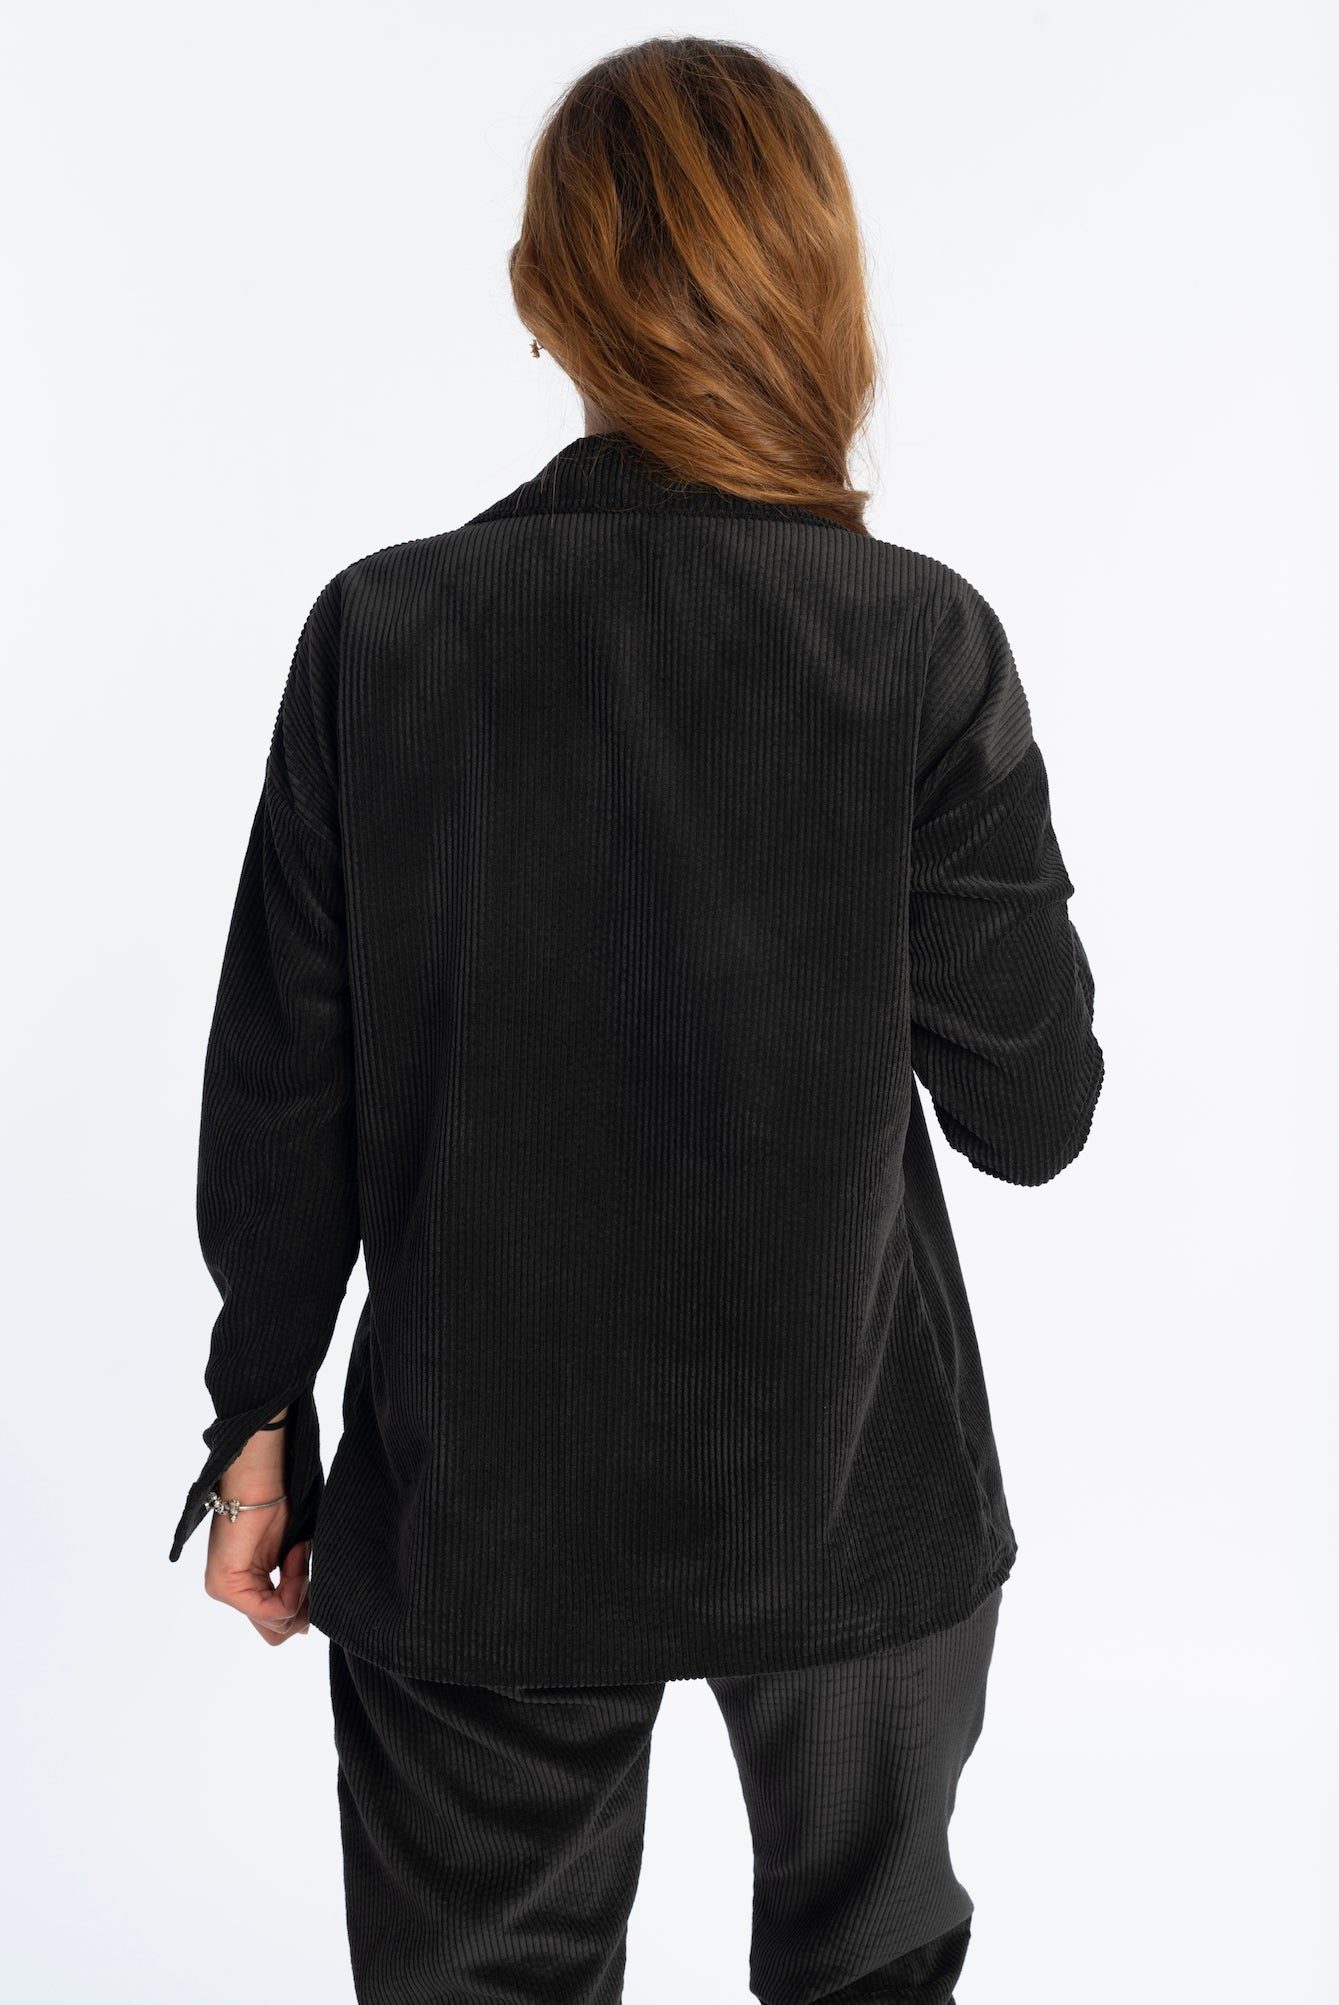 Velvet shirt in black